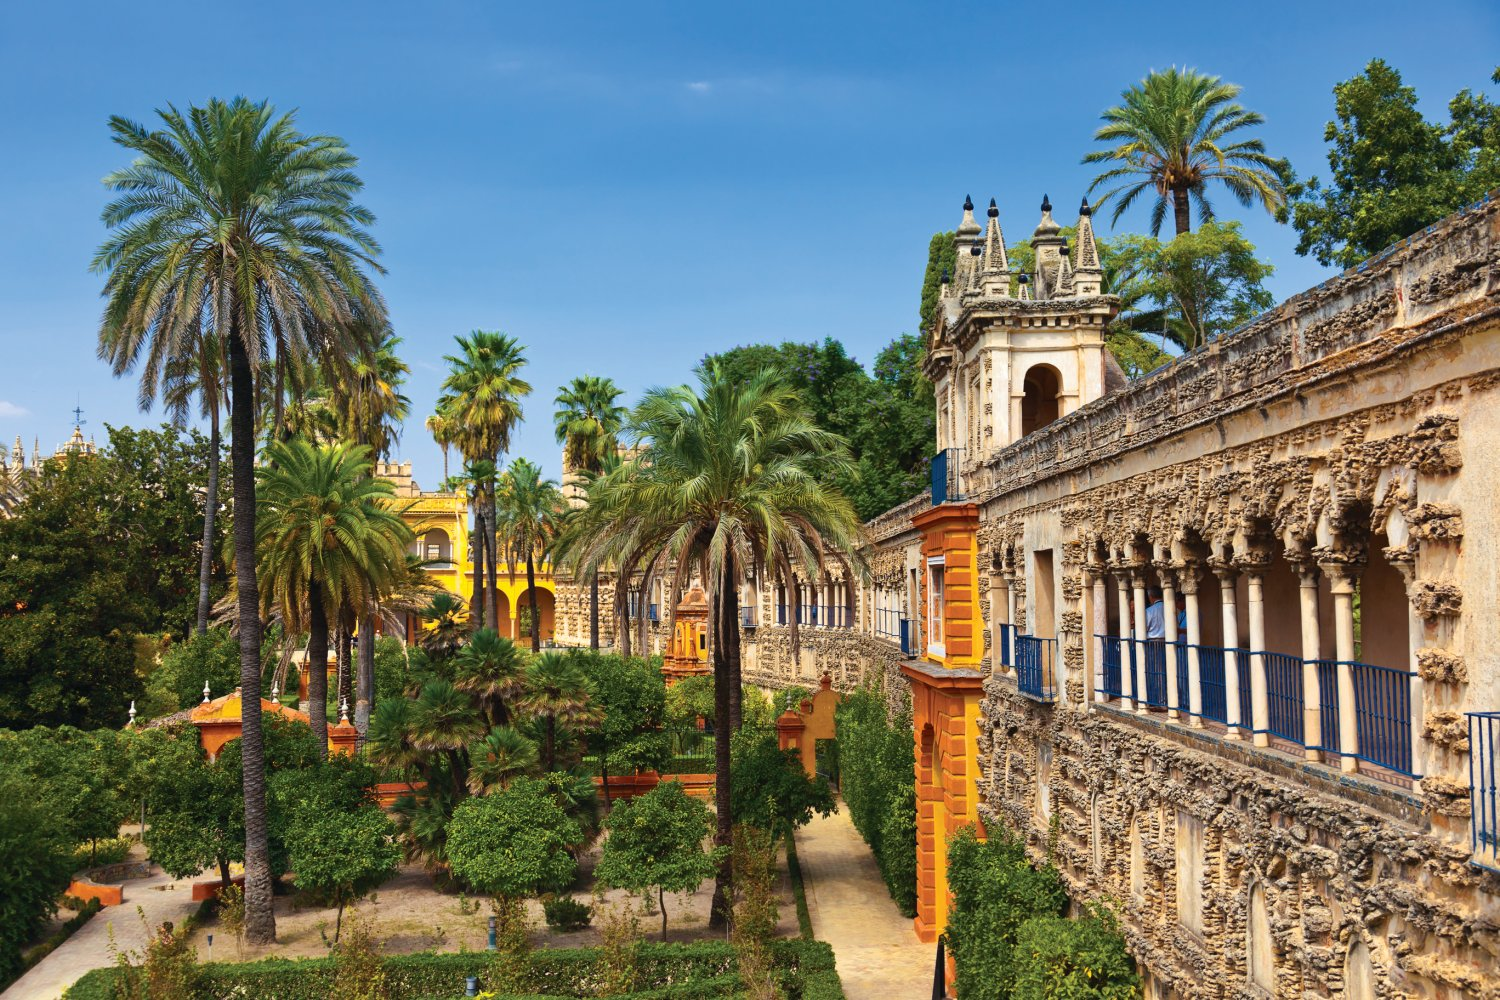 10 Interesting Facts About The City Of Seville The